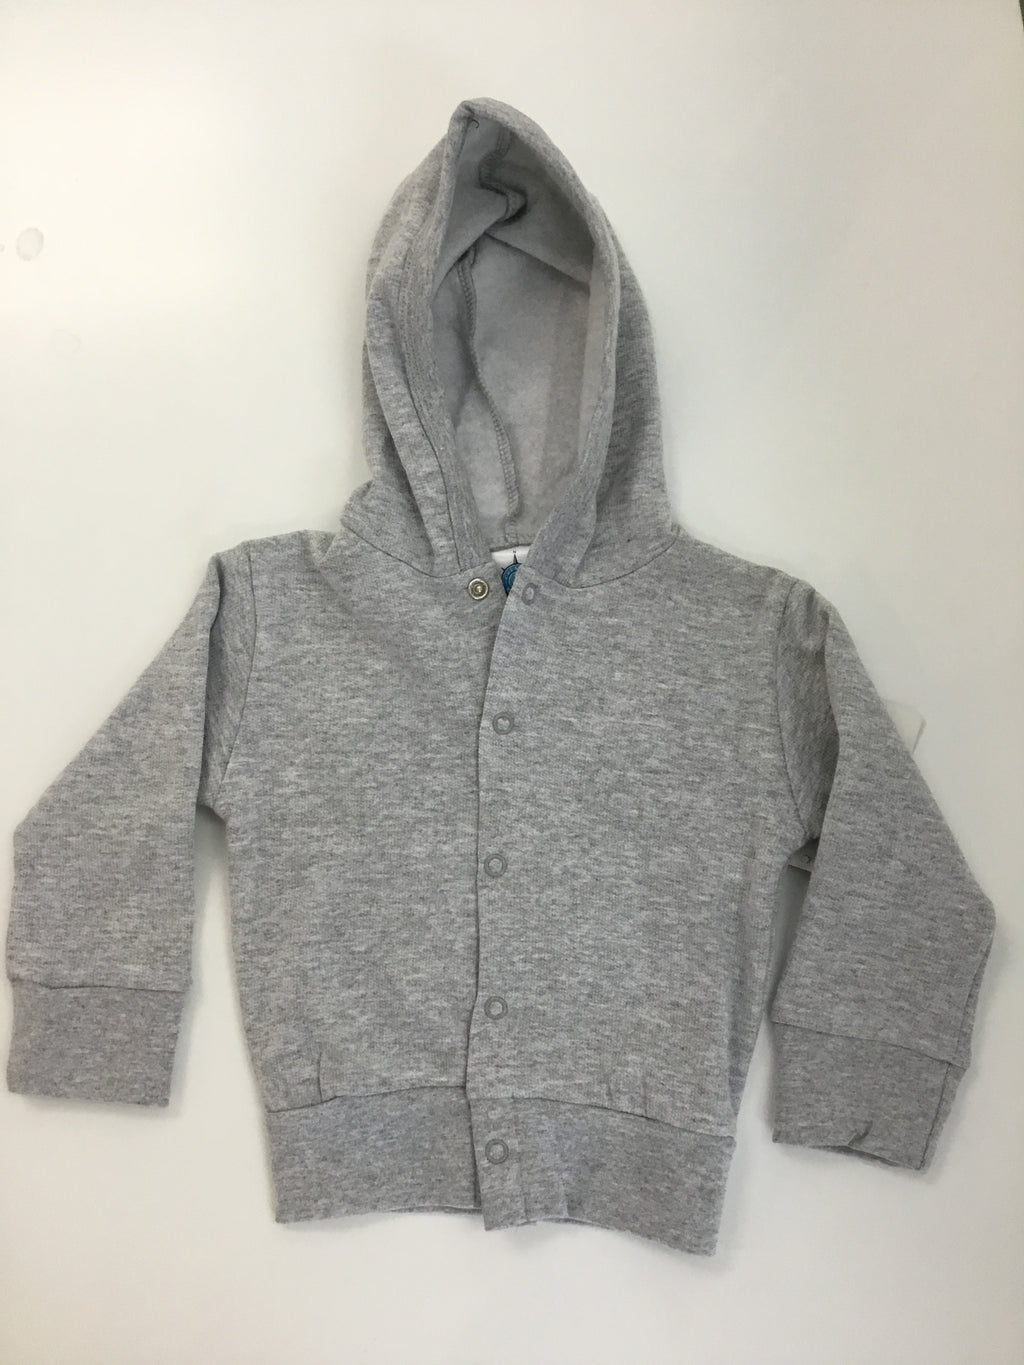 Creative Knitwear Hooded Jacket